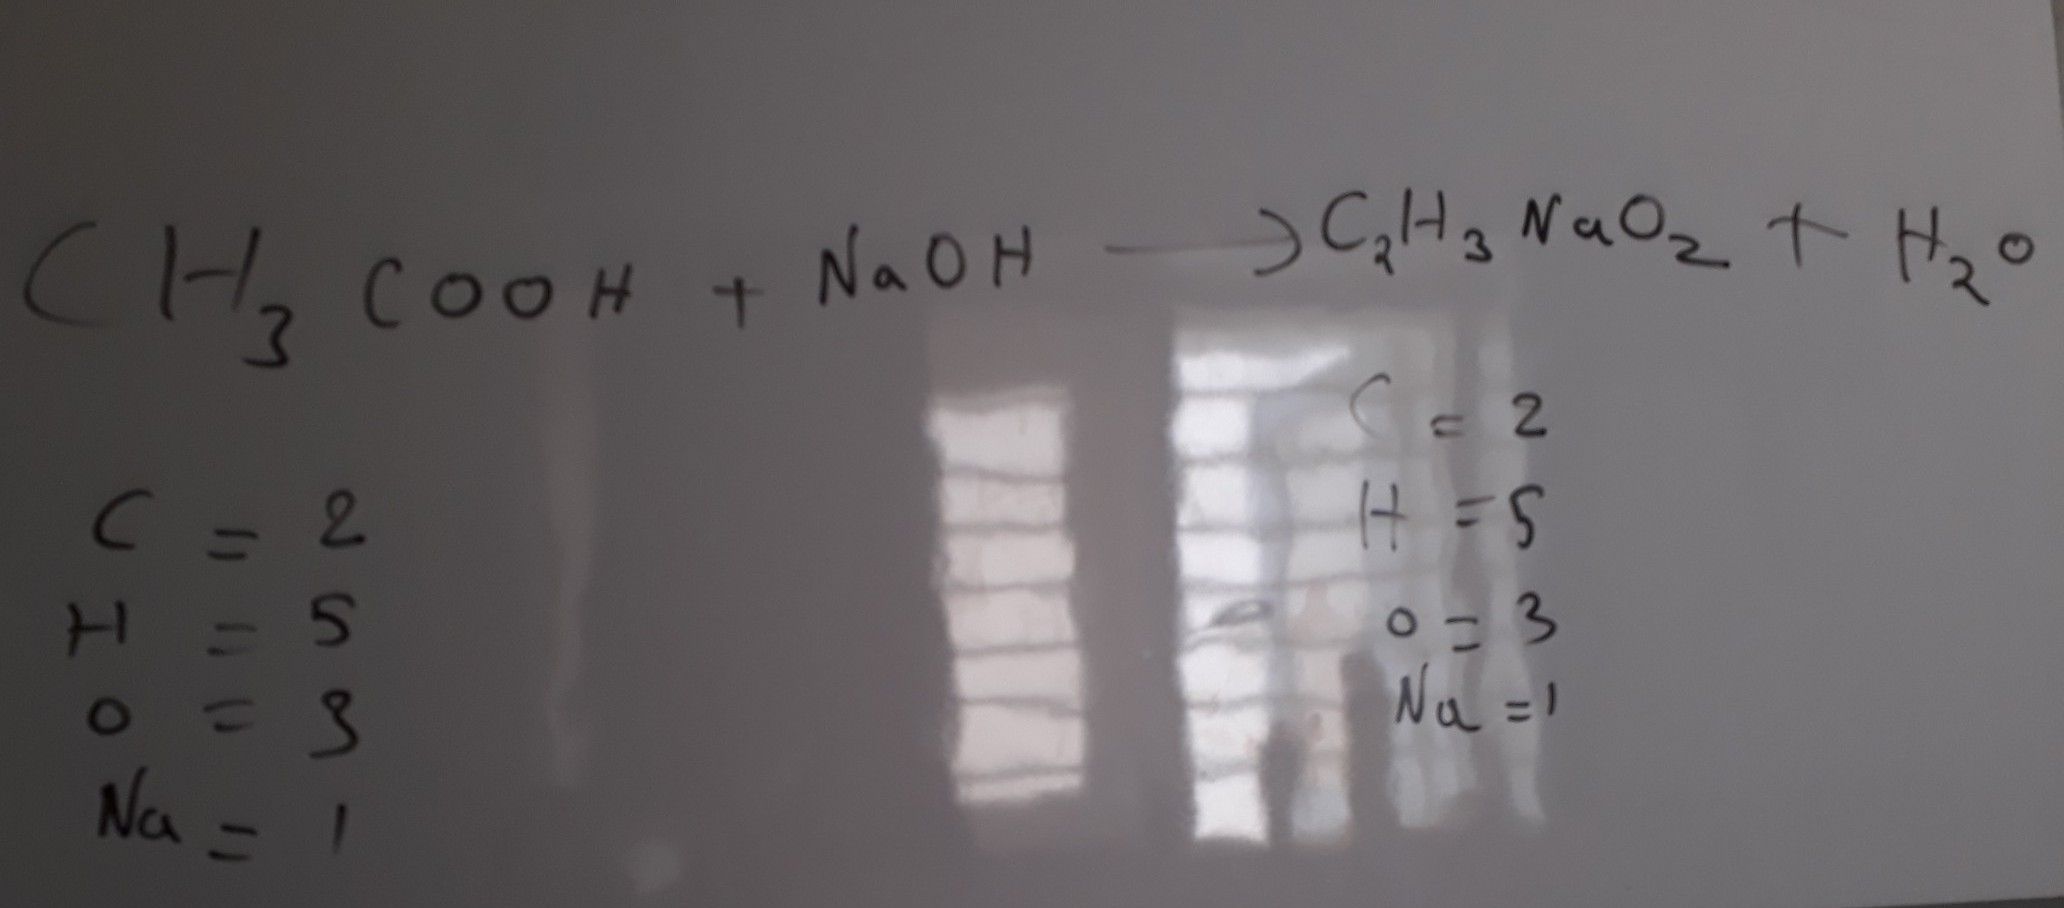 Balanced Chemical Equation For Water And Sodium Hydroxide